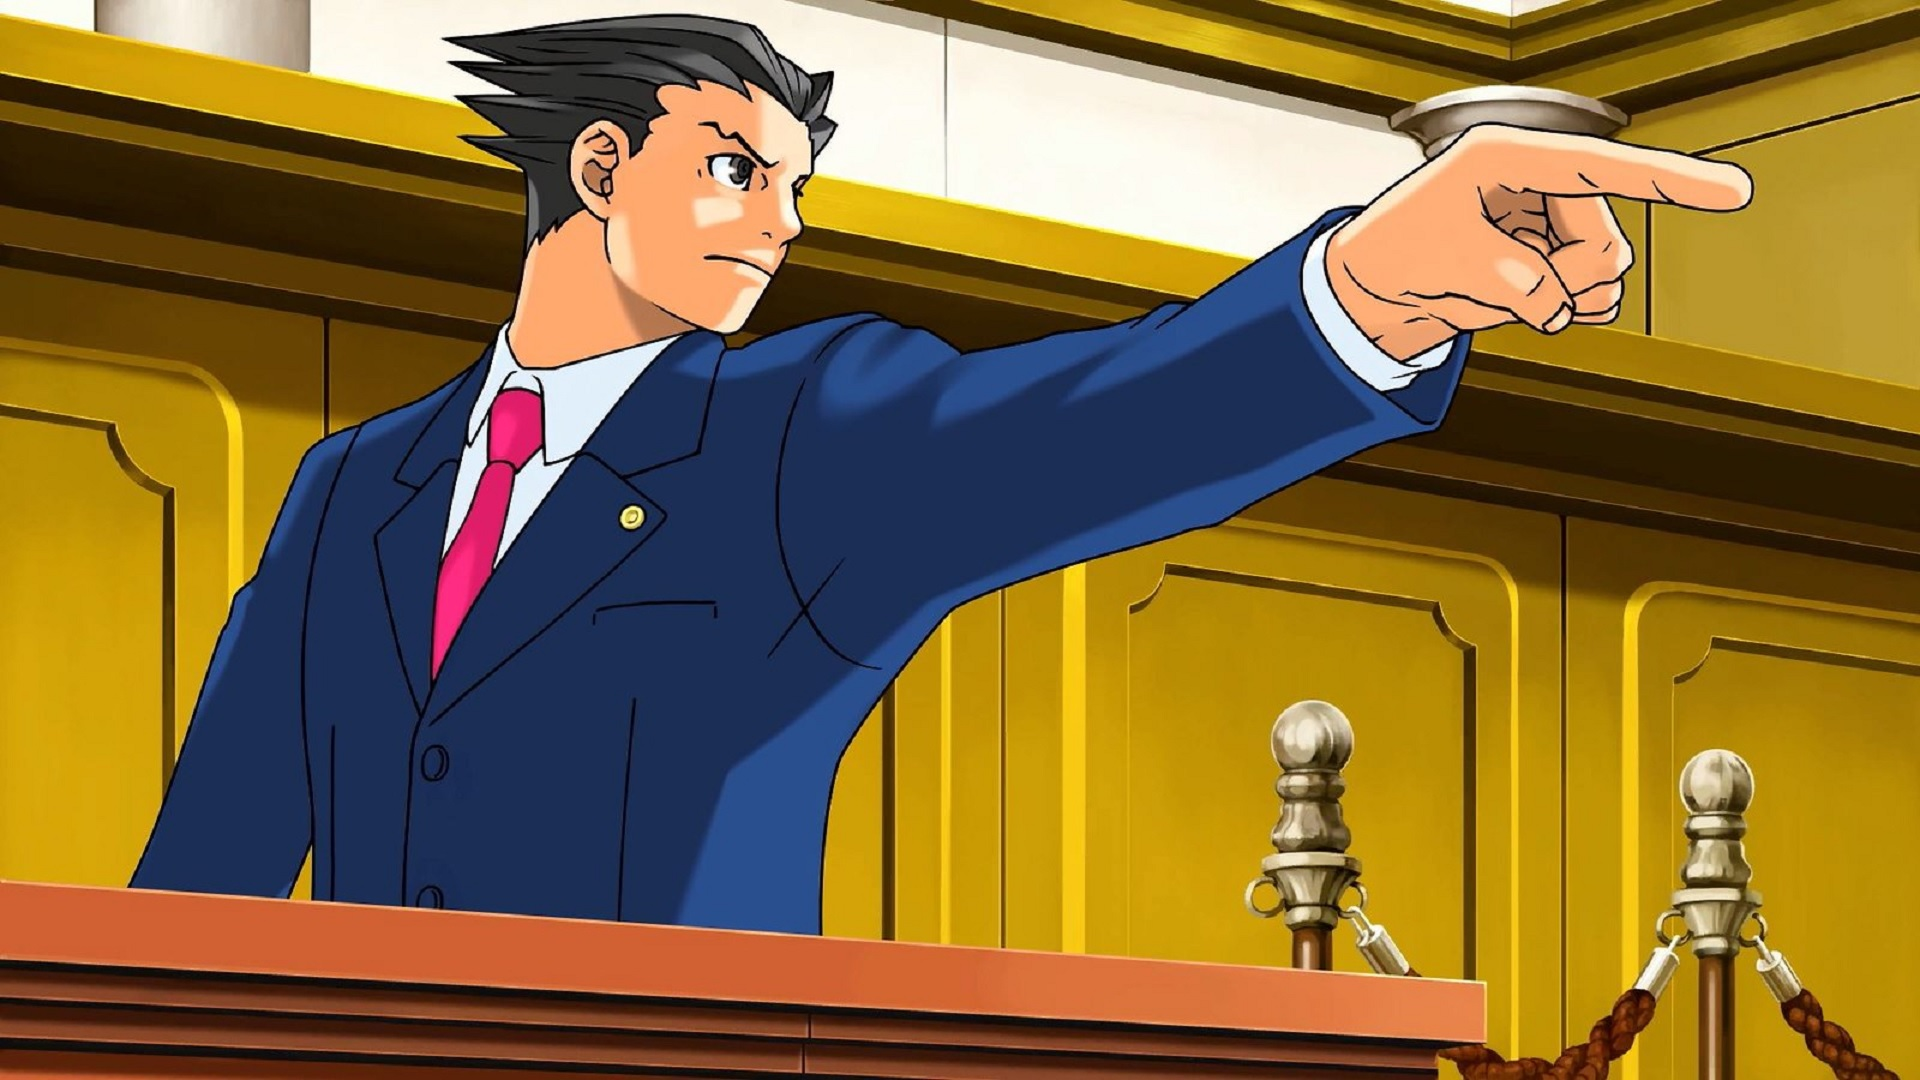 i have no objections to phoenix wright  ace attorney